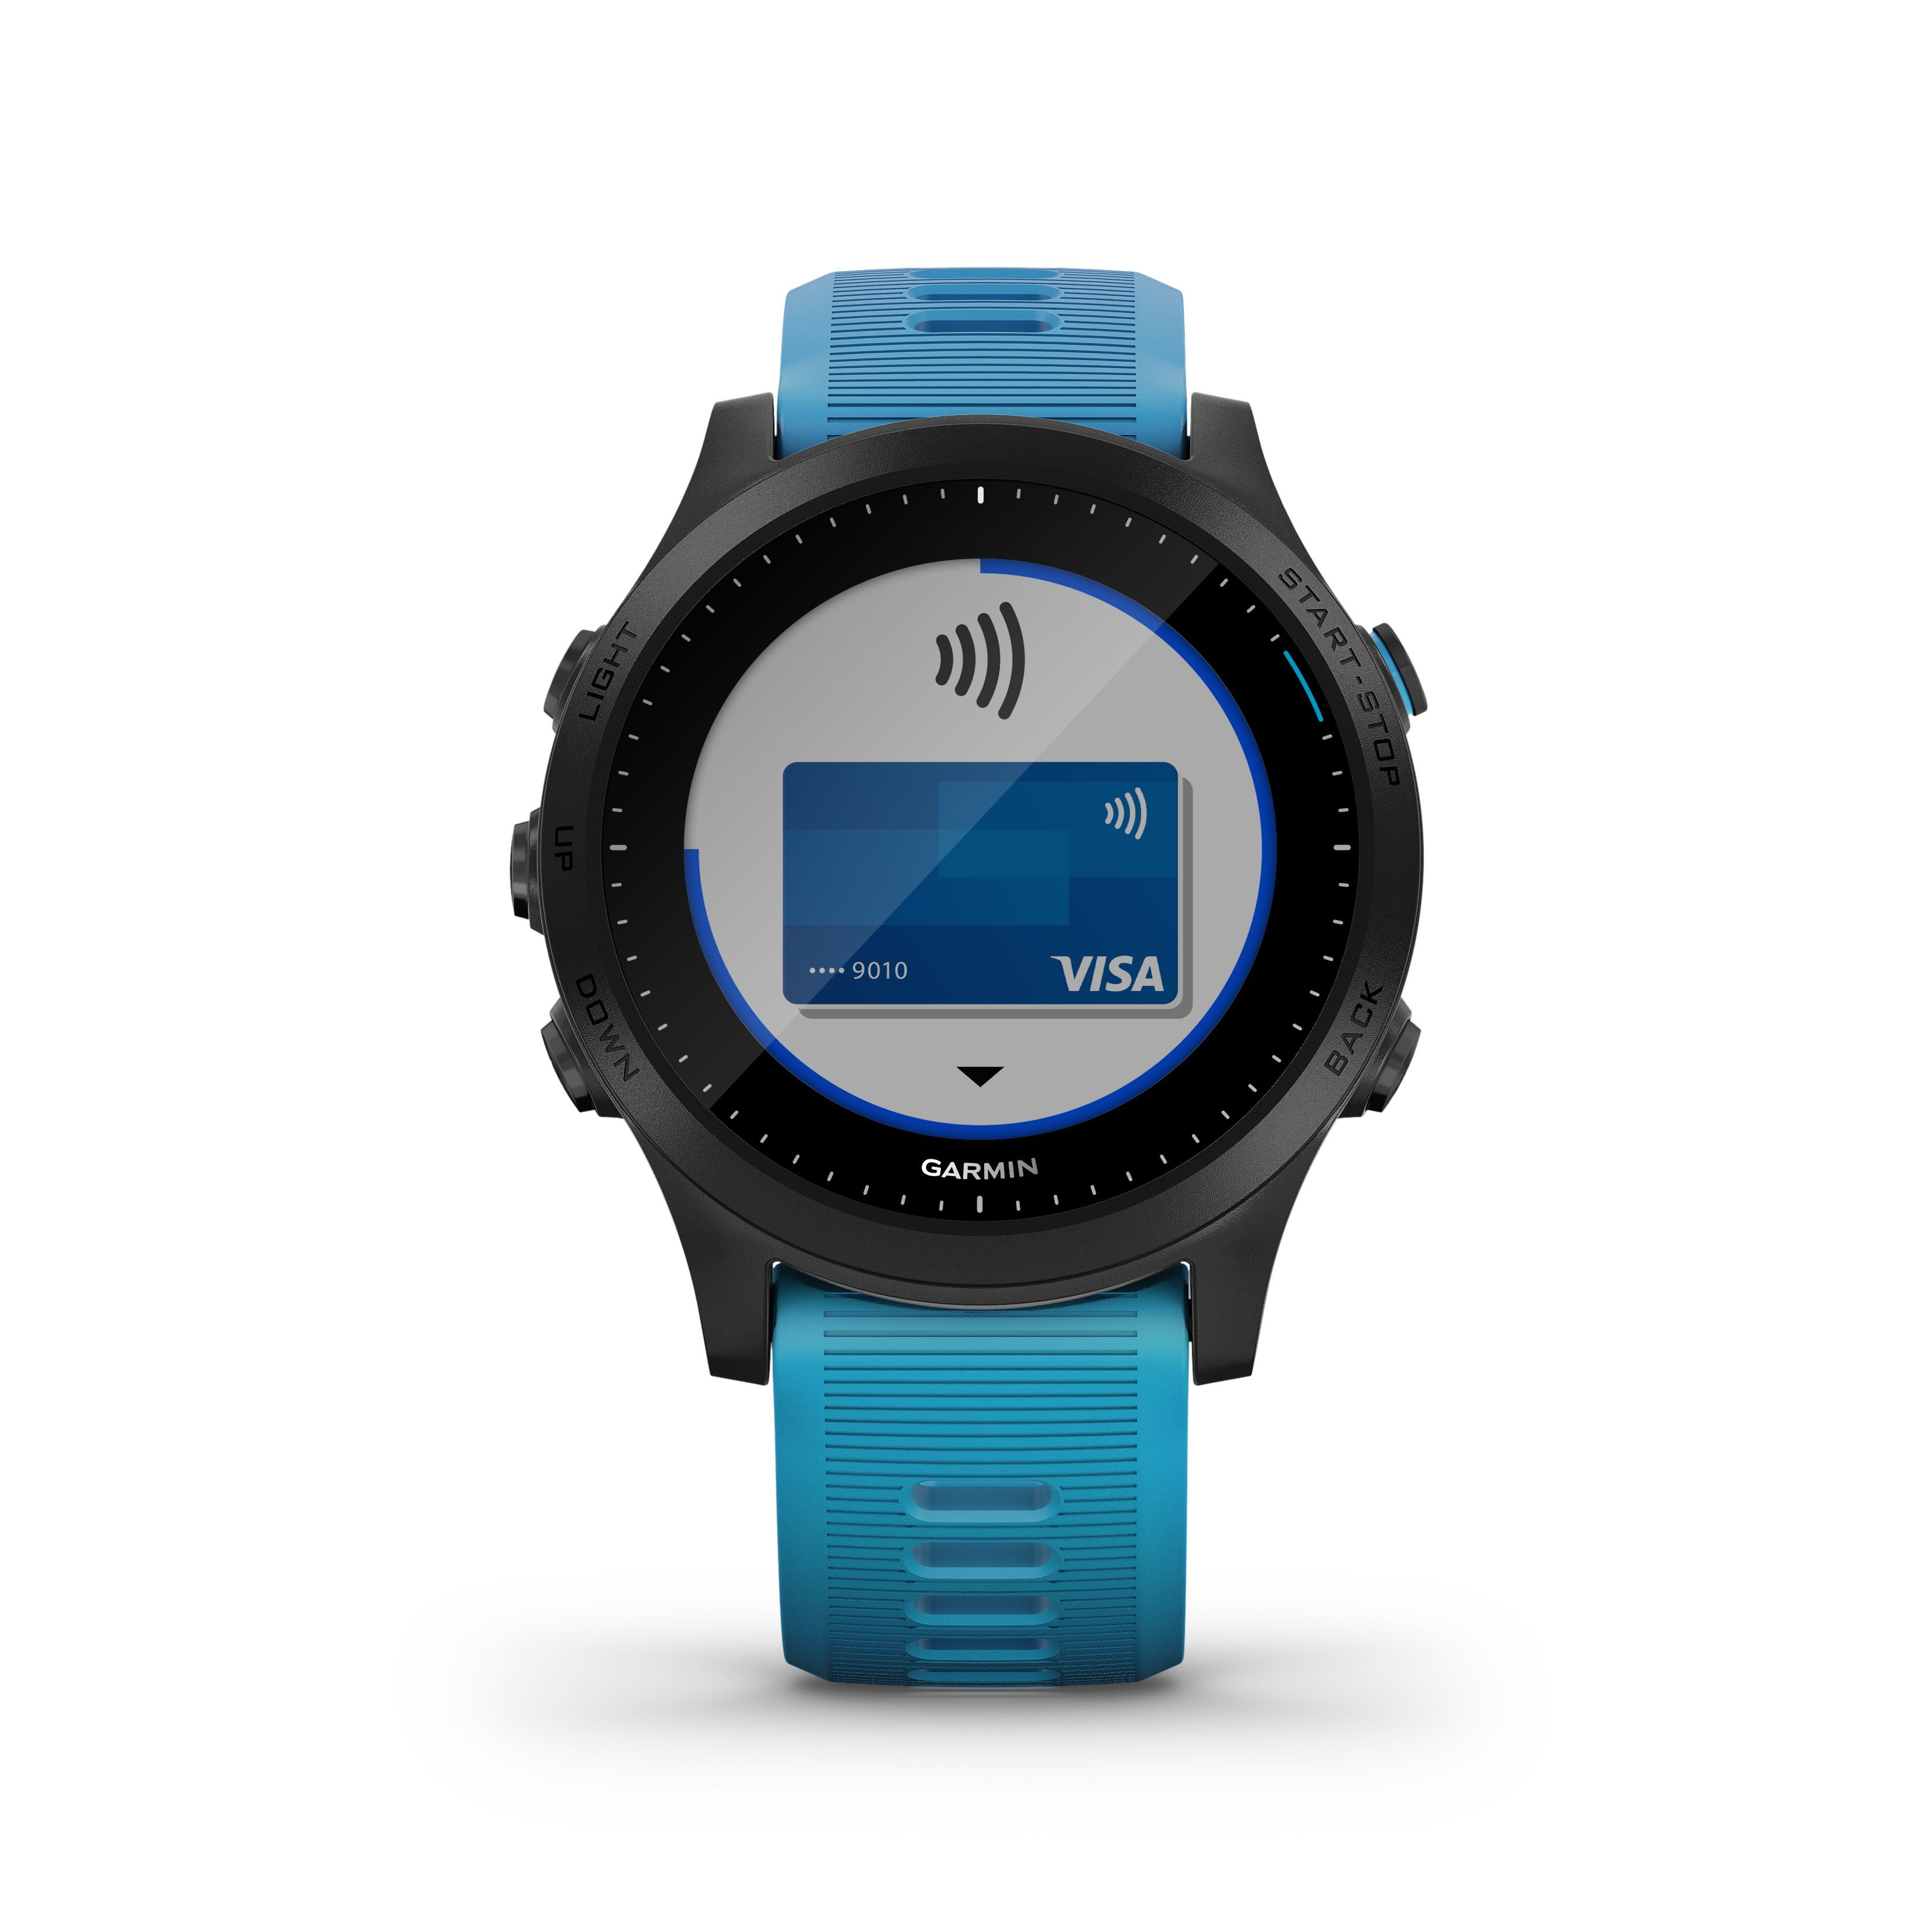 Garmin launches new forerunner 45, 245 and 945 GPS running watches